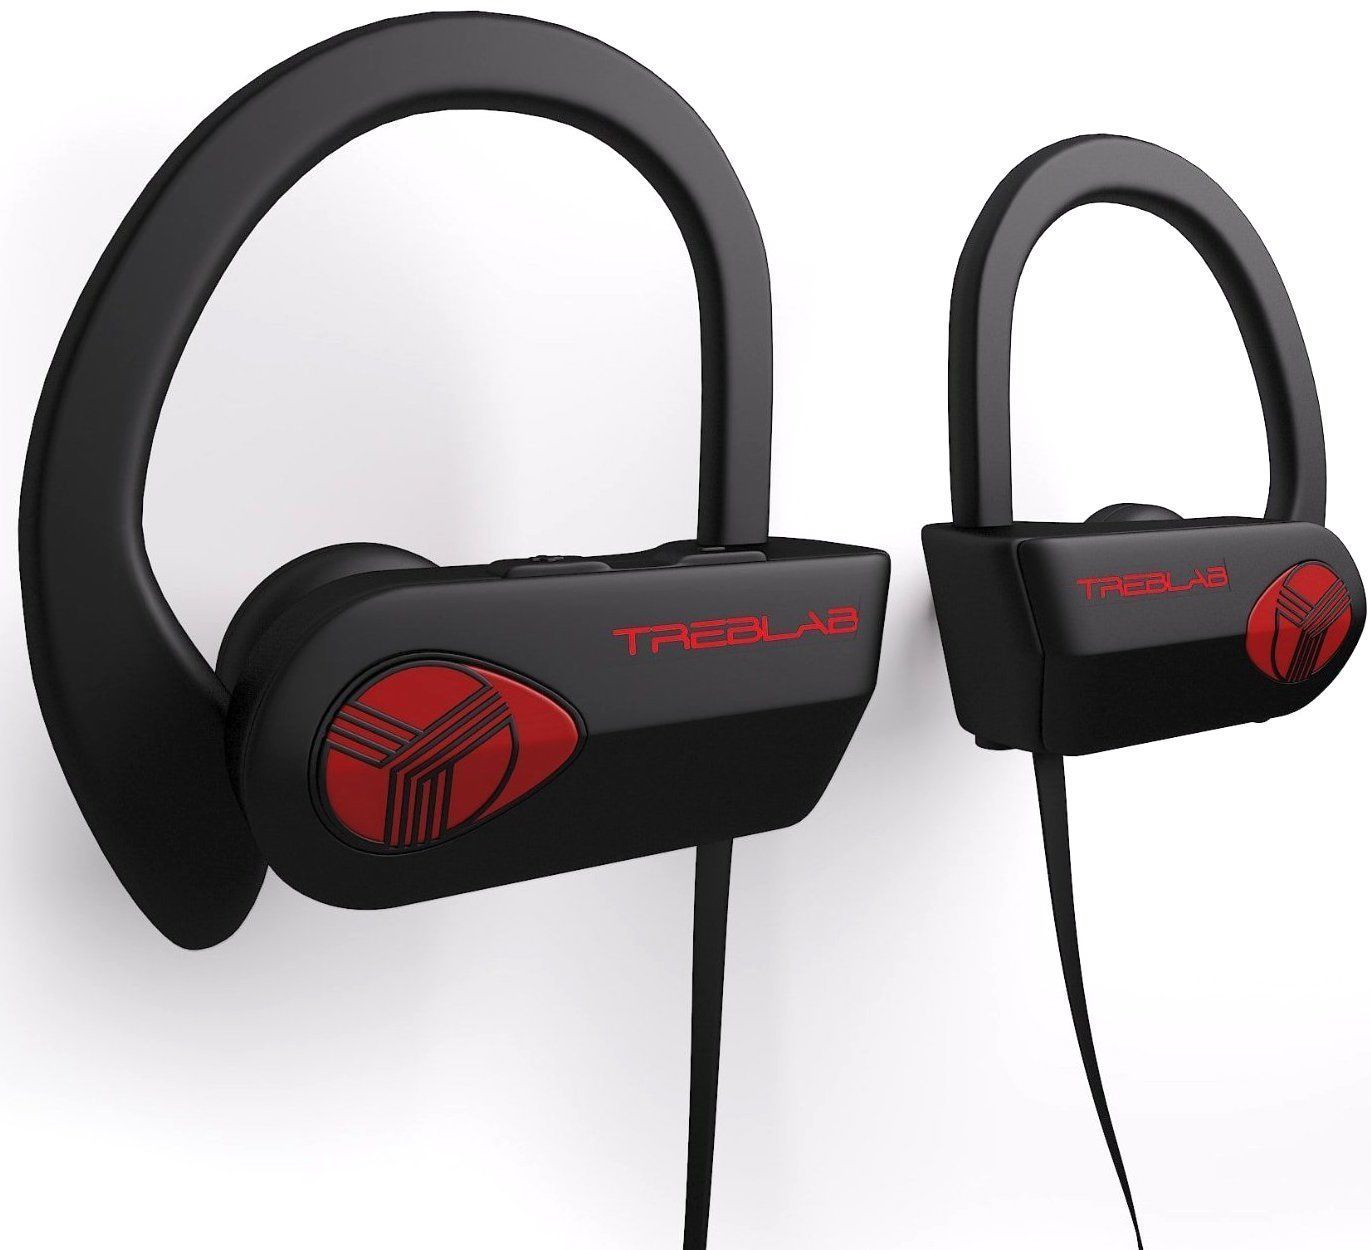 Treblab Xr500 Bluetooth Headphones Noise Cancelling Amazon Co Uk Electronics Running Headphones Bluetooth Earbuds Wireless Sports Headphones